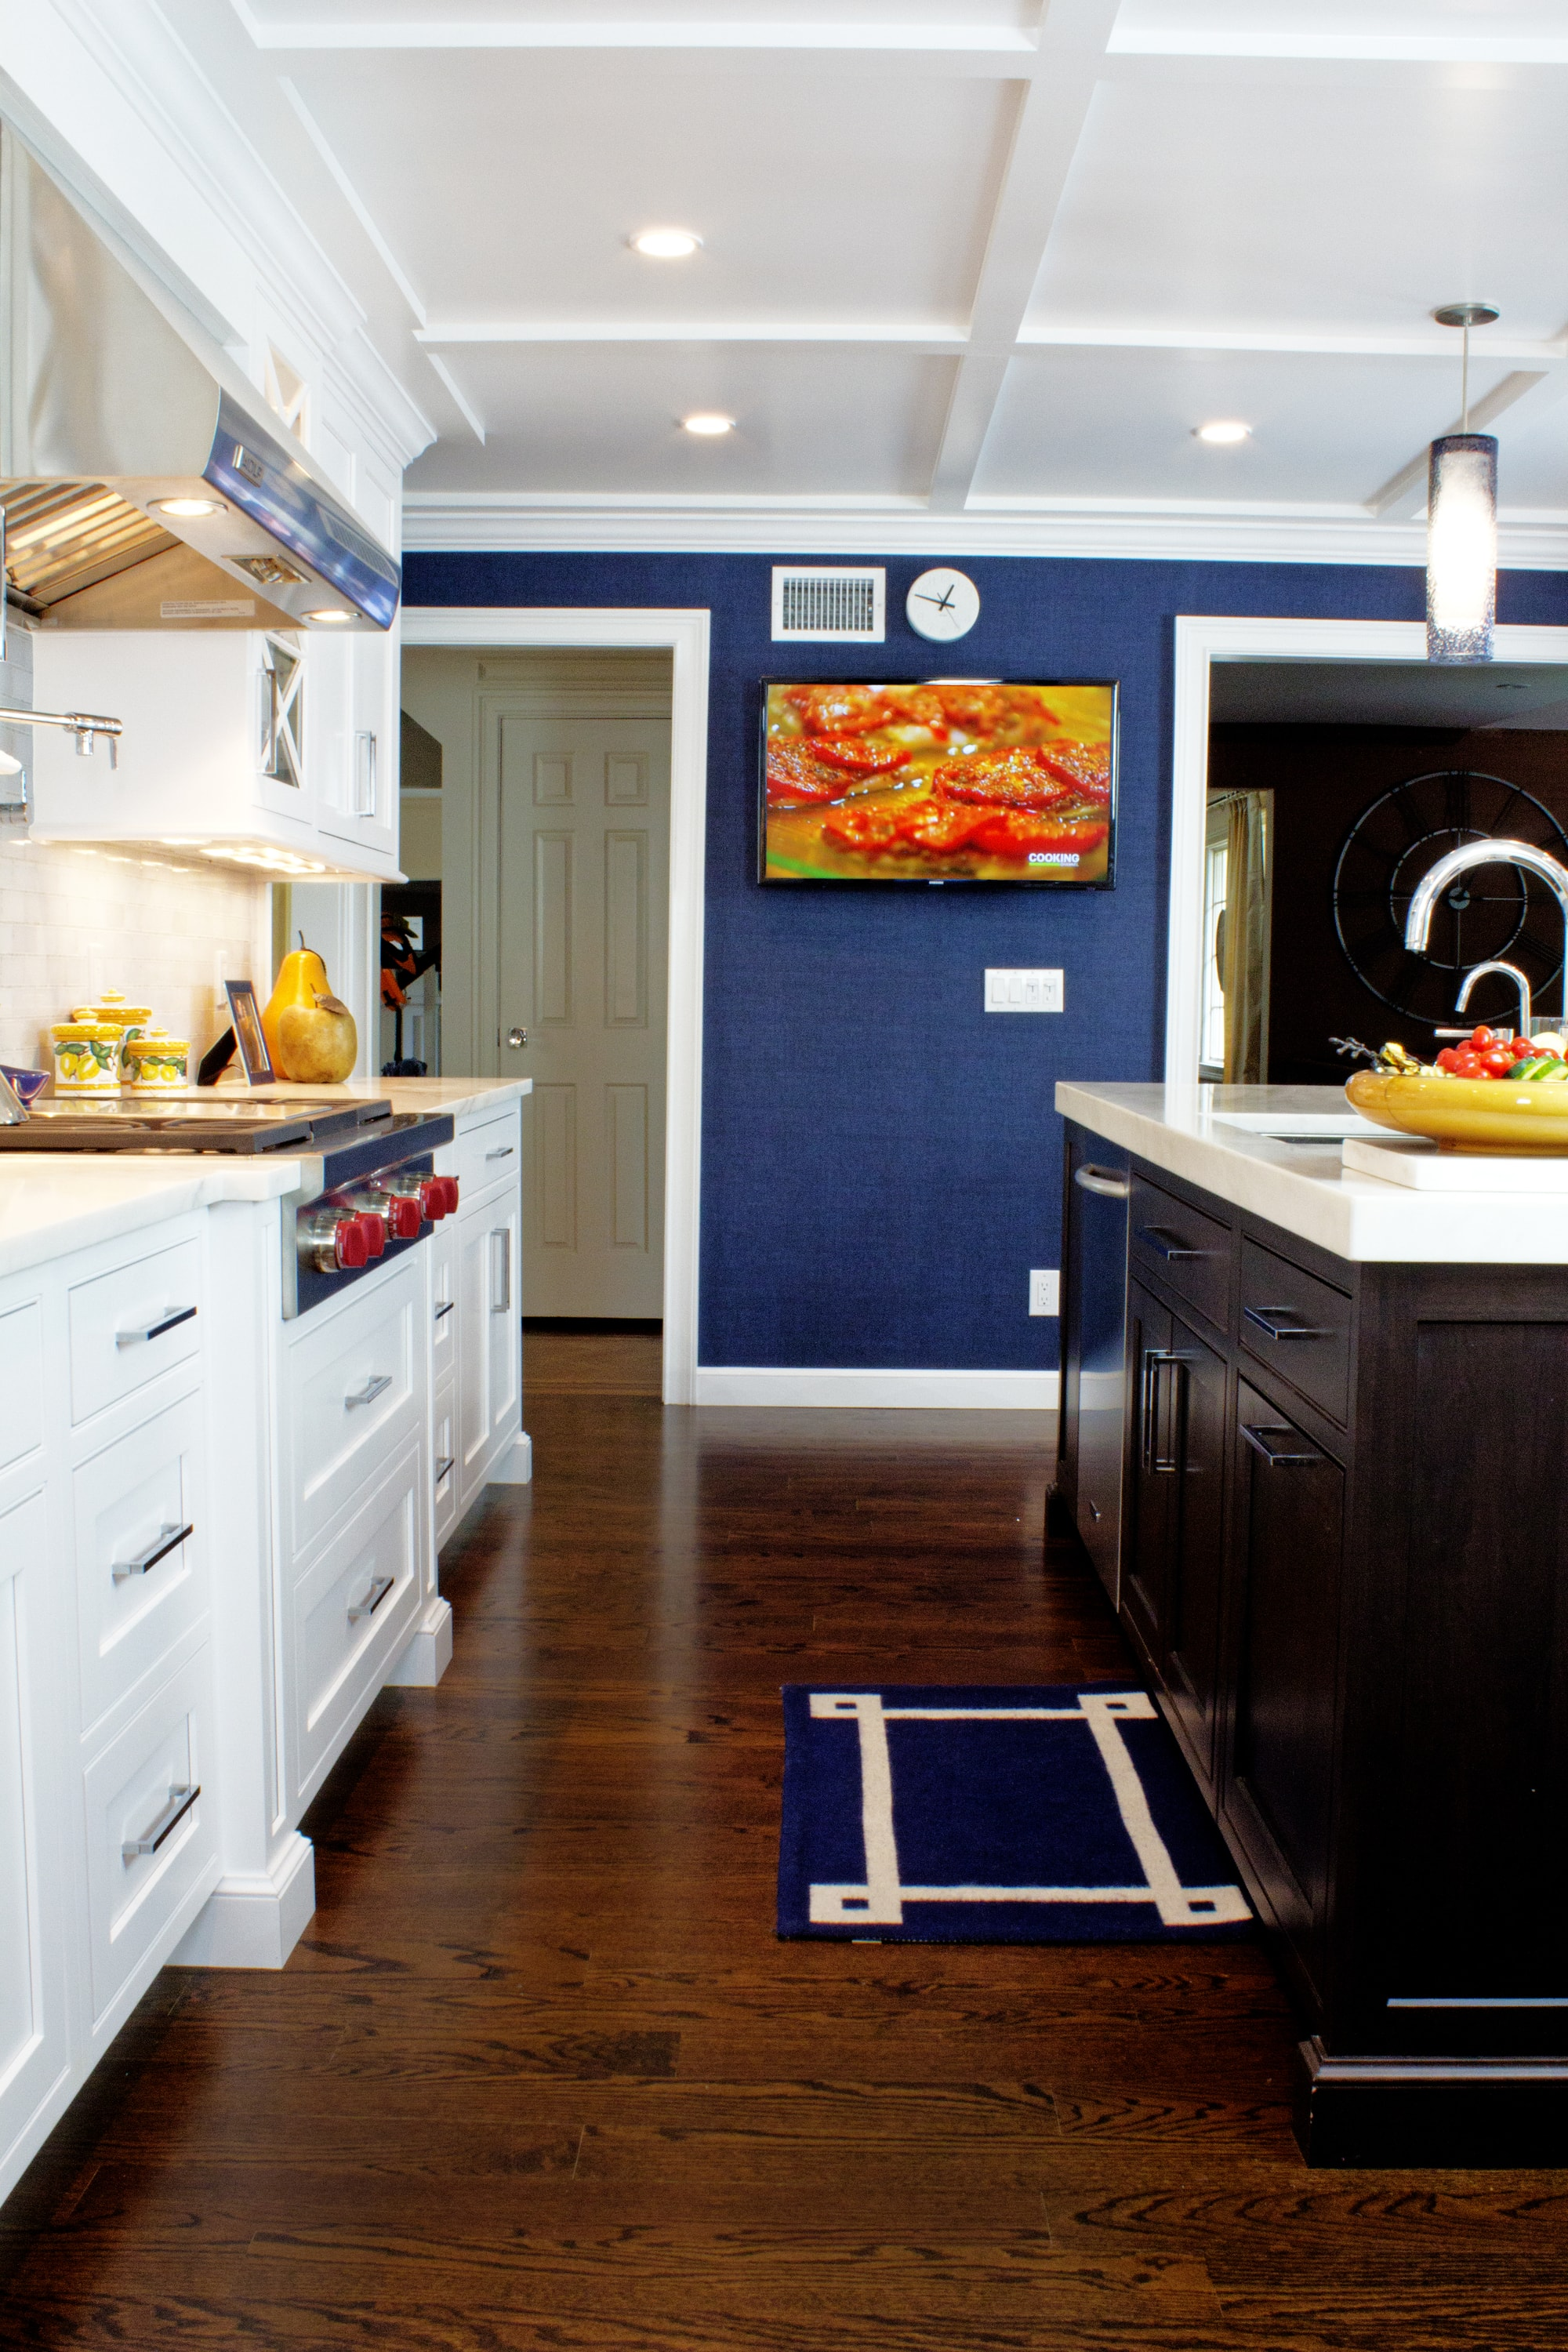 Transitional style kitchen with blue wall accent